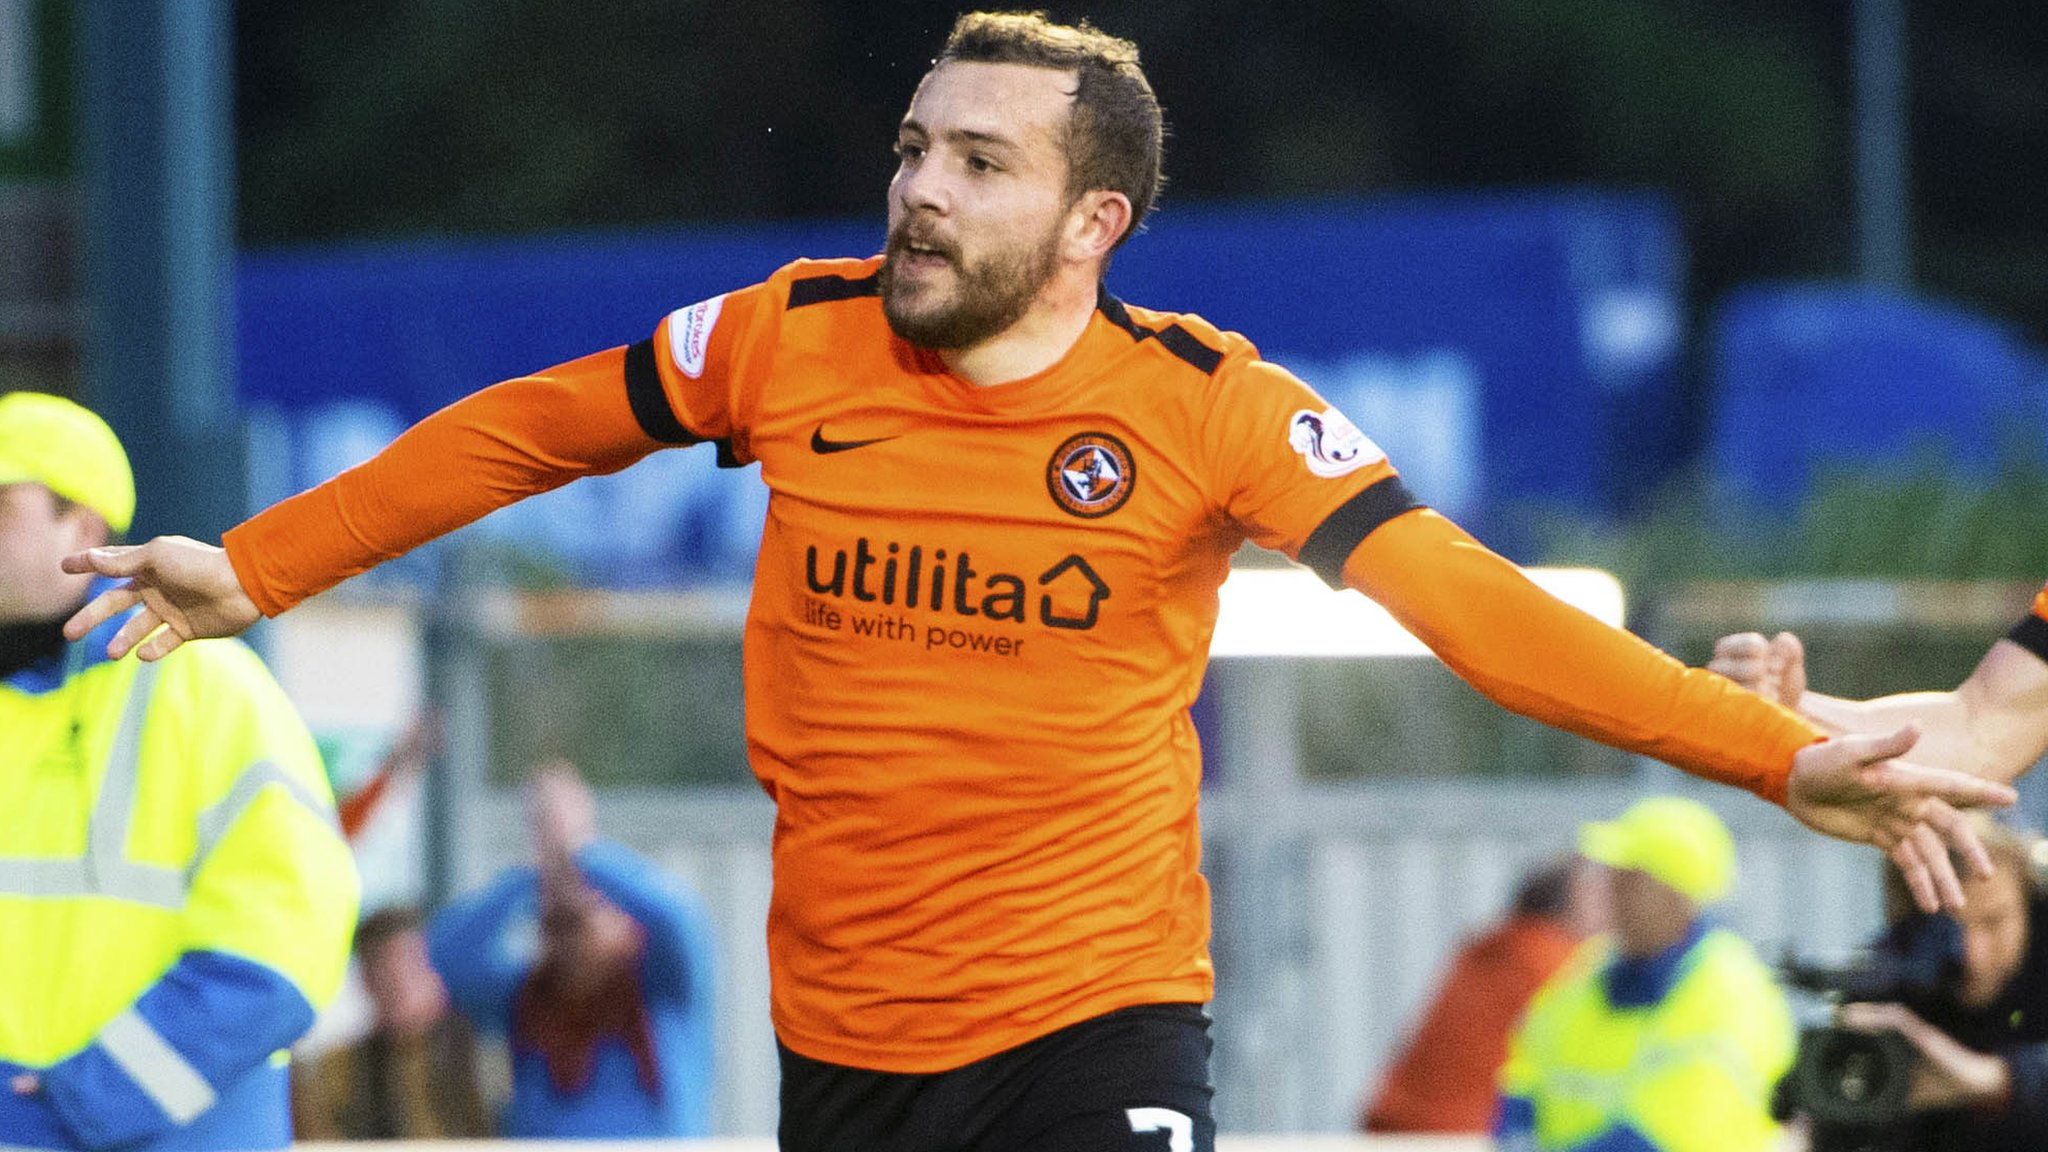 Inverness CT 0-1 Dundee United: McMullan scores and Polworth sent off in first leg